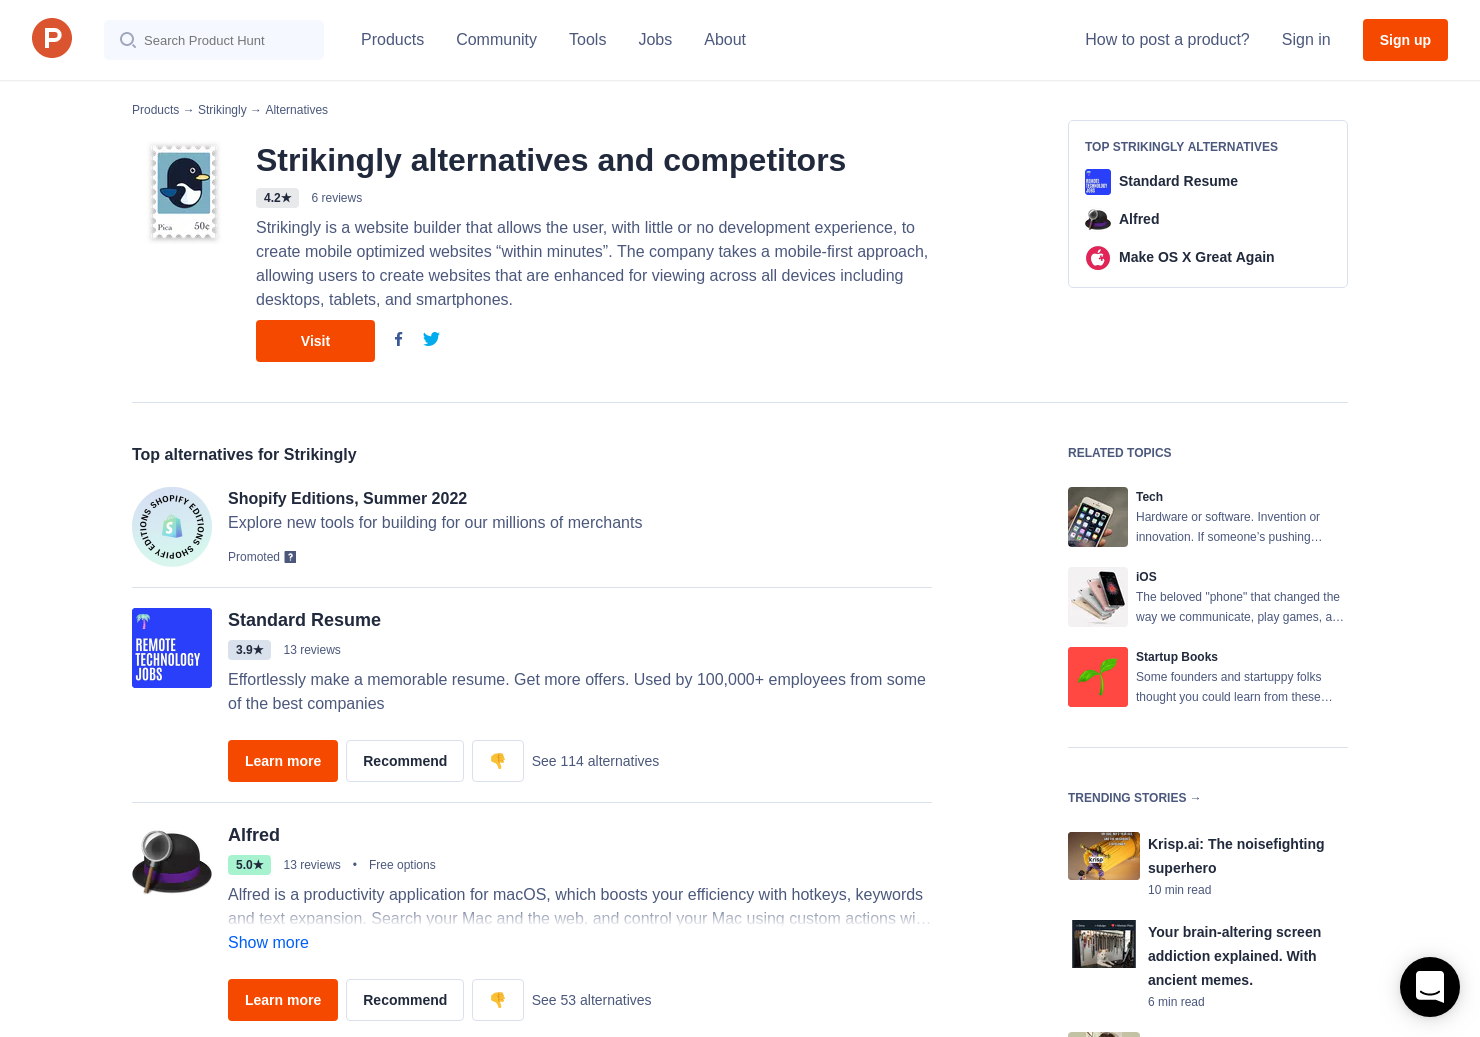 9 Alternatives to Strikingly - Resume - Product Hunt